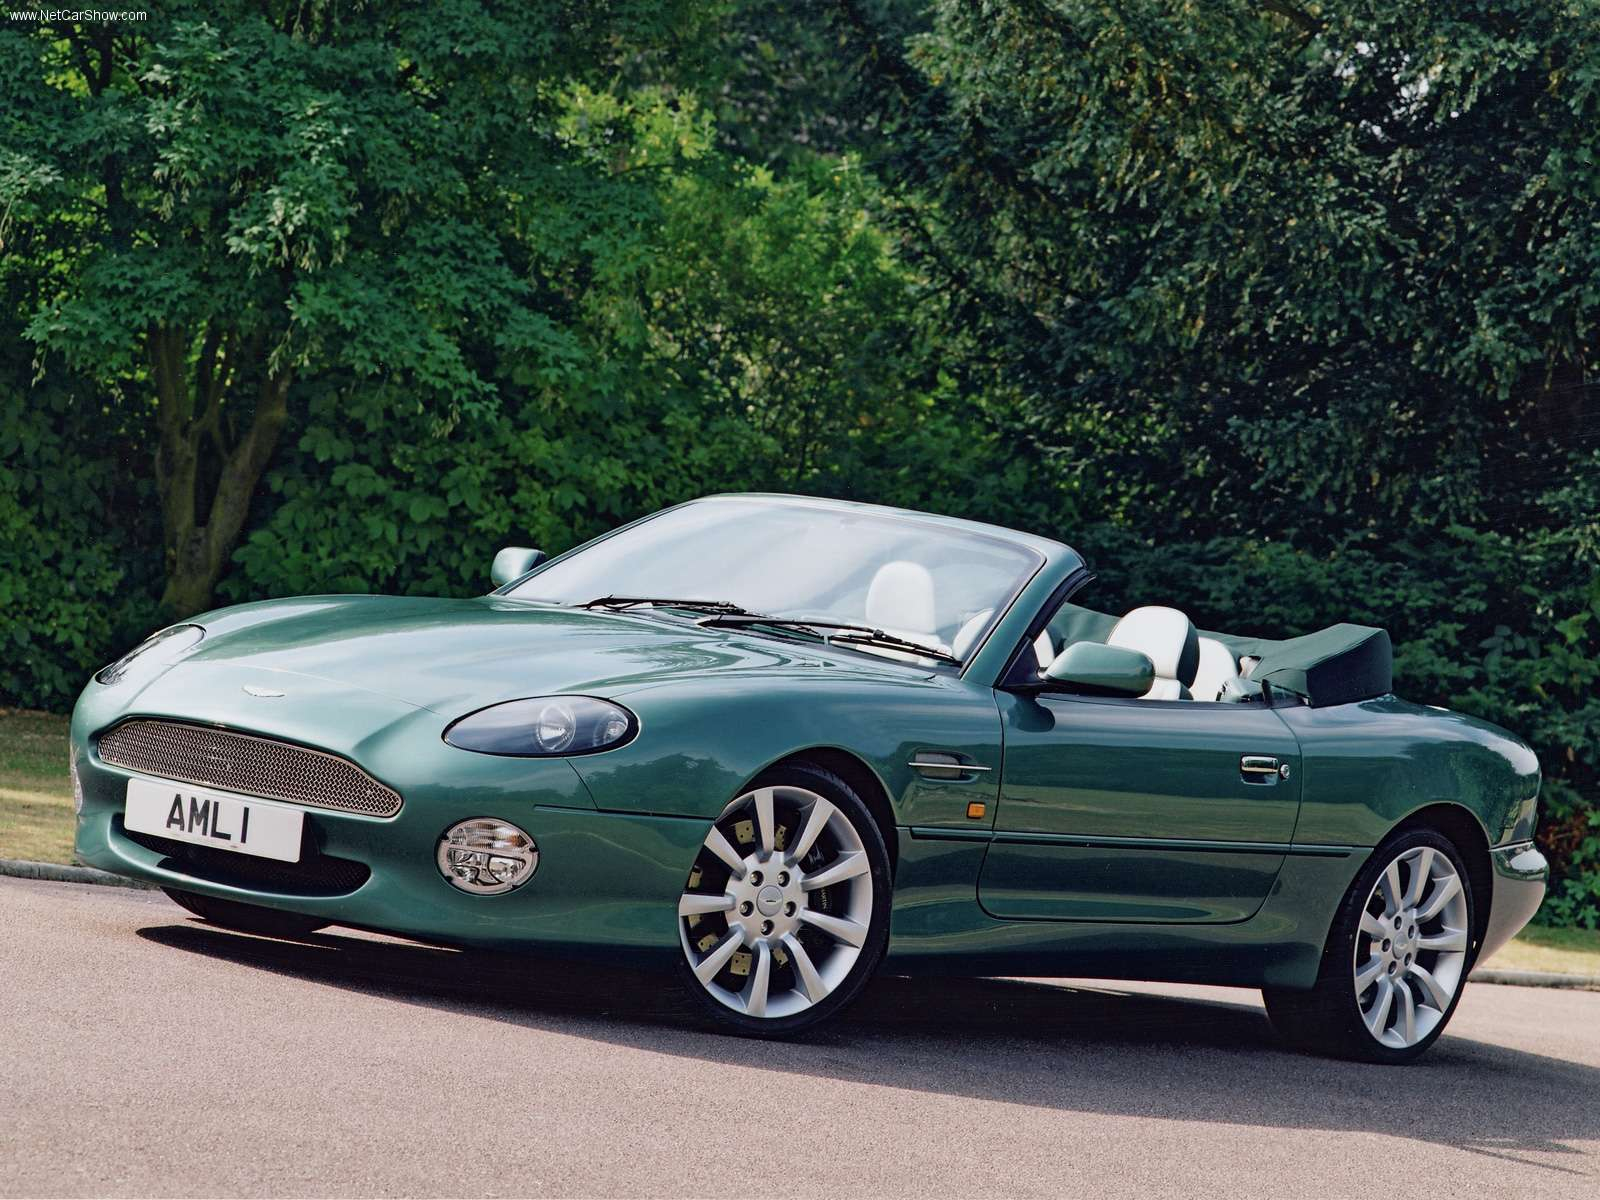 Aston Martin Wallpapers Aston Martin Db7 Vantage Volante HD Wallpapers Download free images and photos [musssic.tk]